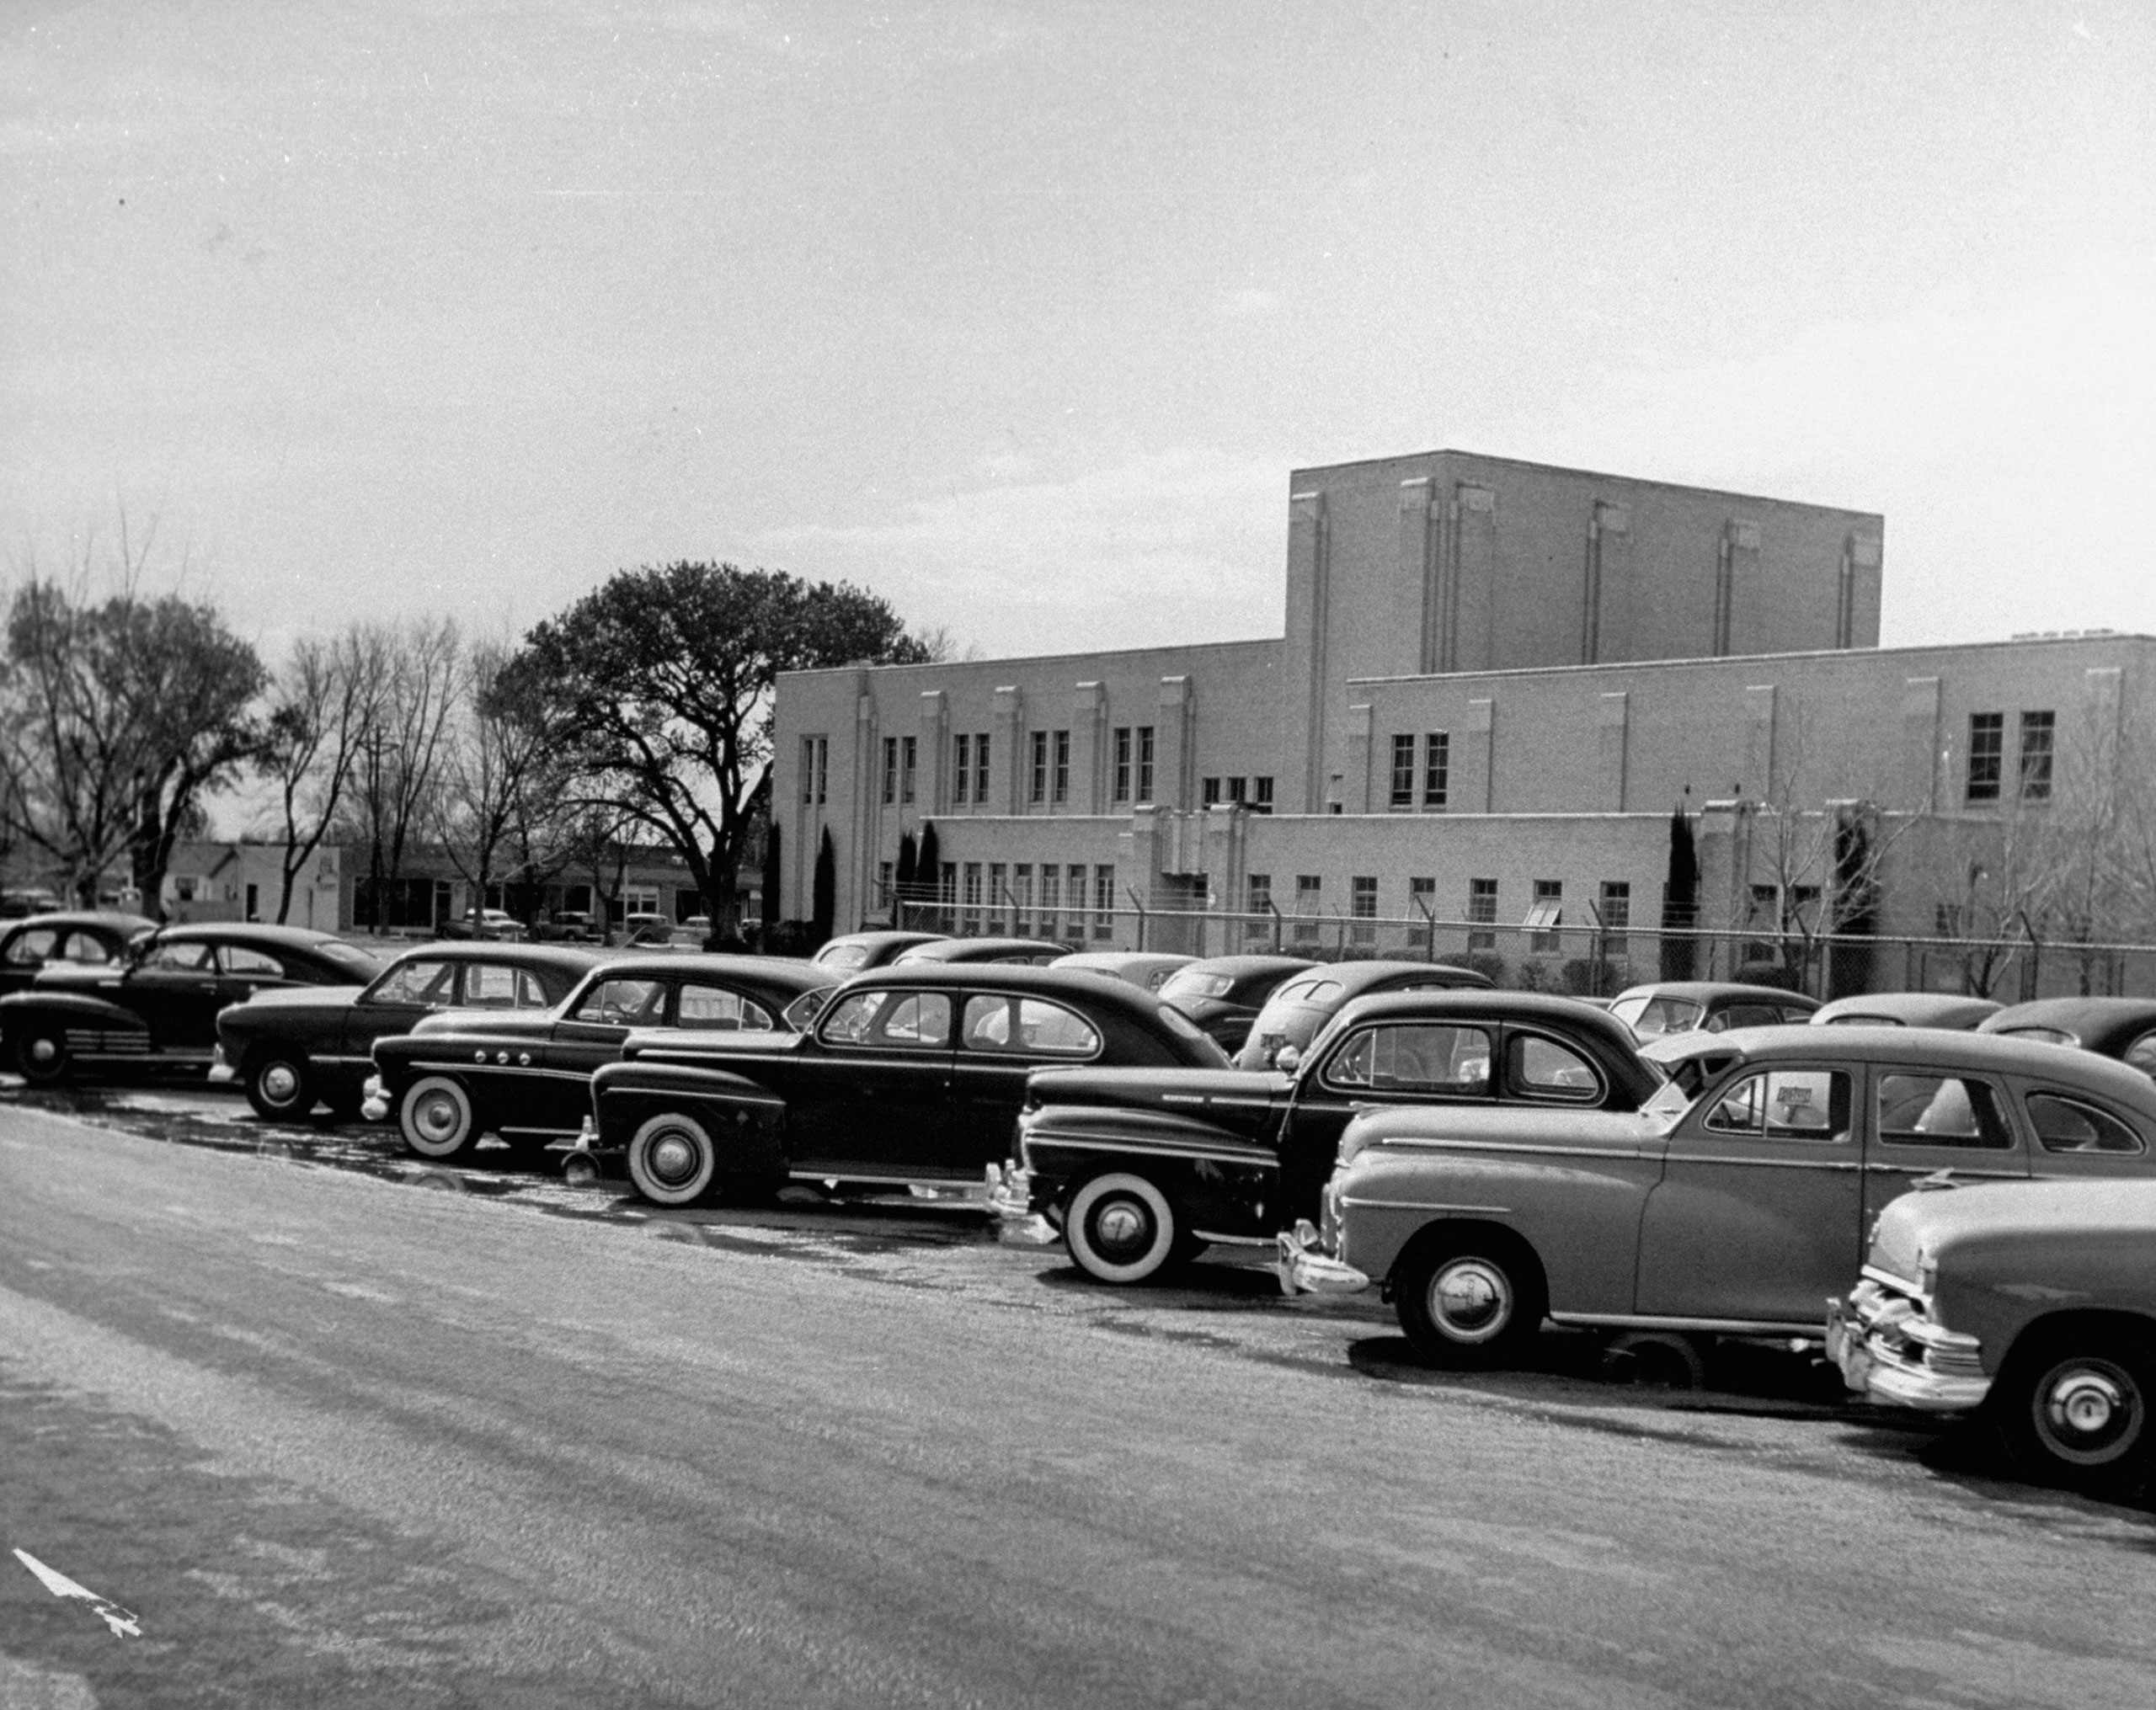 <b>Caption from LIFE.</b> Cars of Carlsbad High students fill own parking lot.